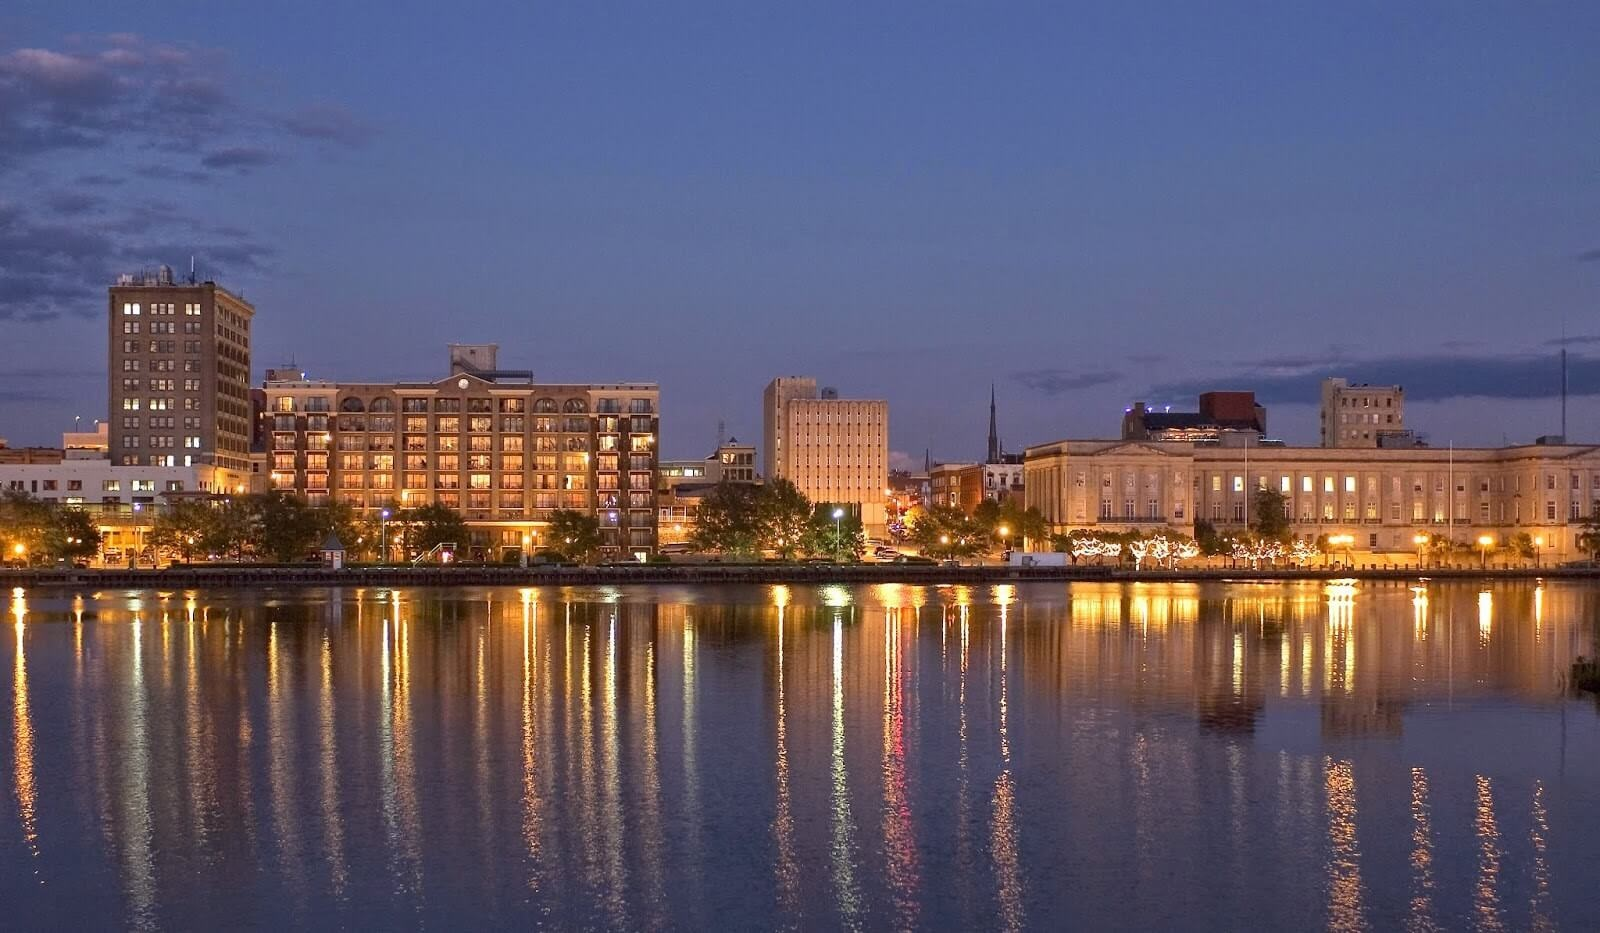 Downtown Wilmington - The Cape Fear River